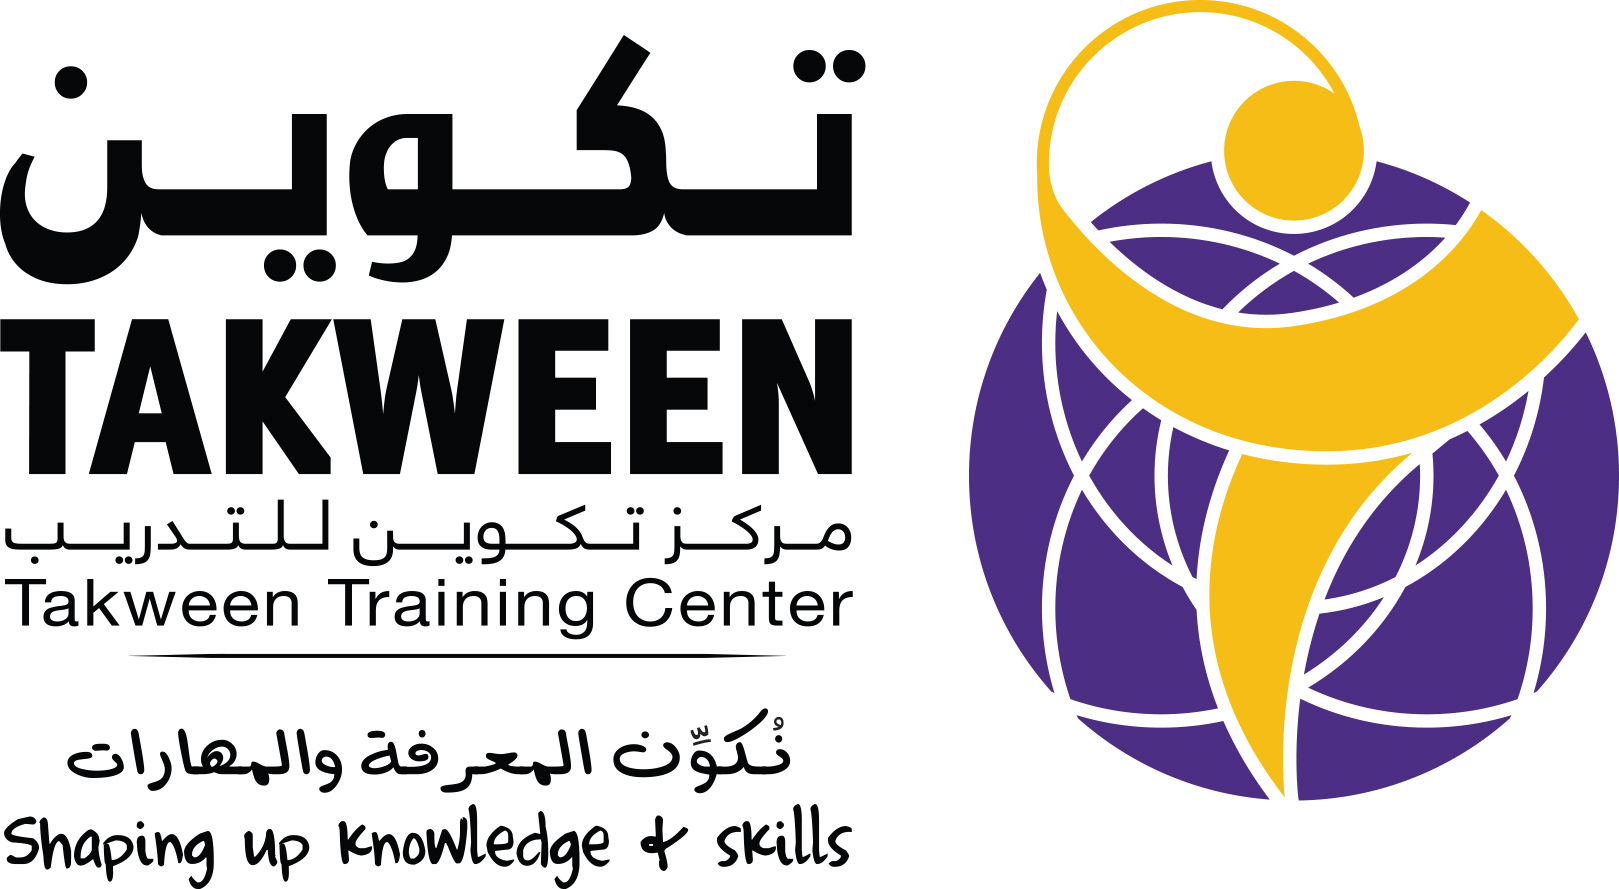 More about Takween Training Centre